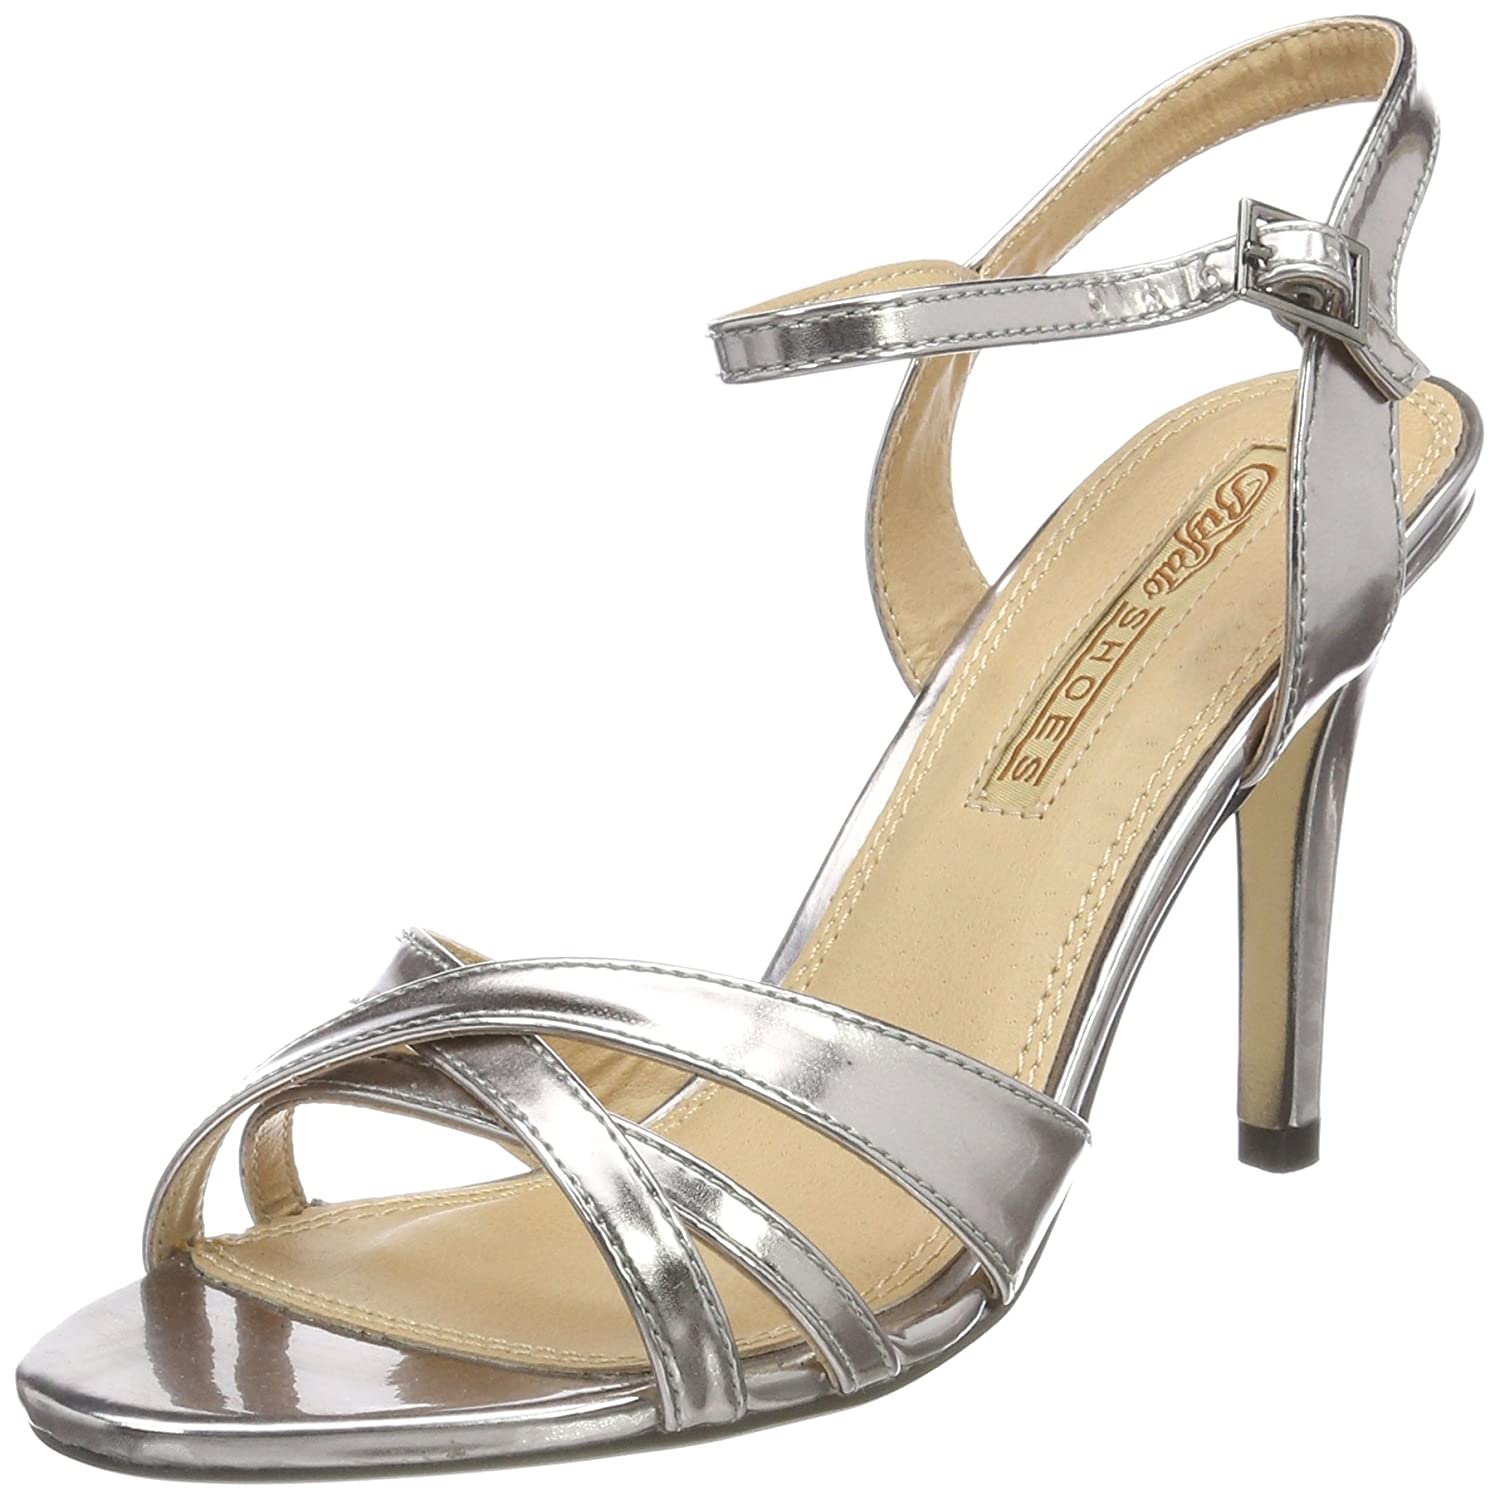 Buffalo 312703 Metallic Pu, Bride Cheville femme Buffalo Shoes 16533